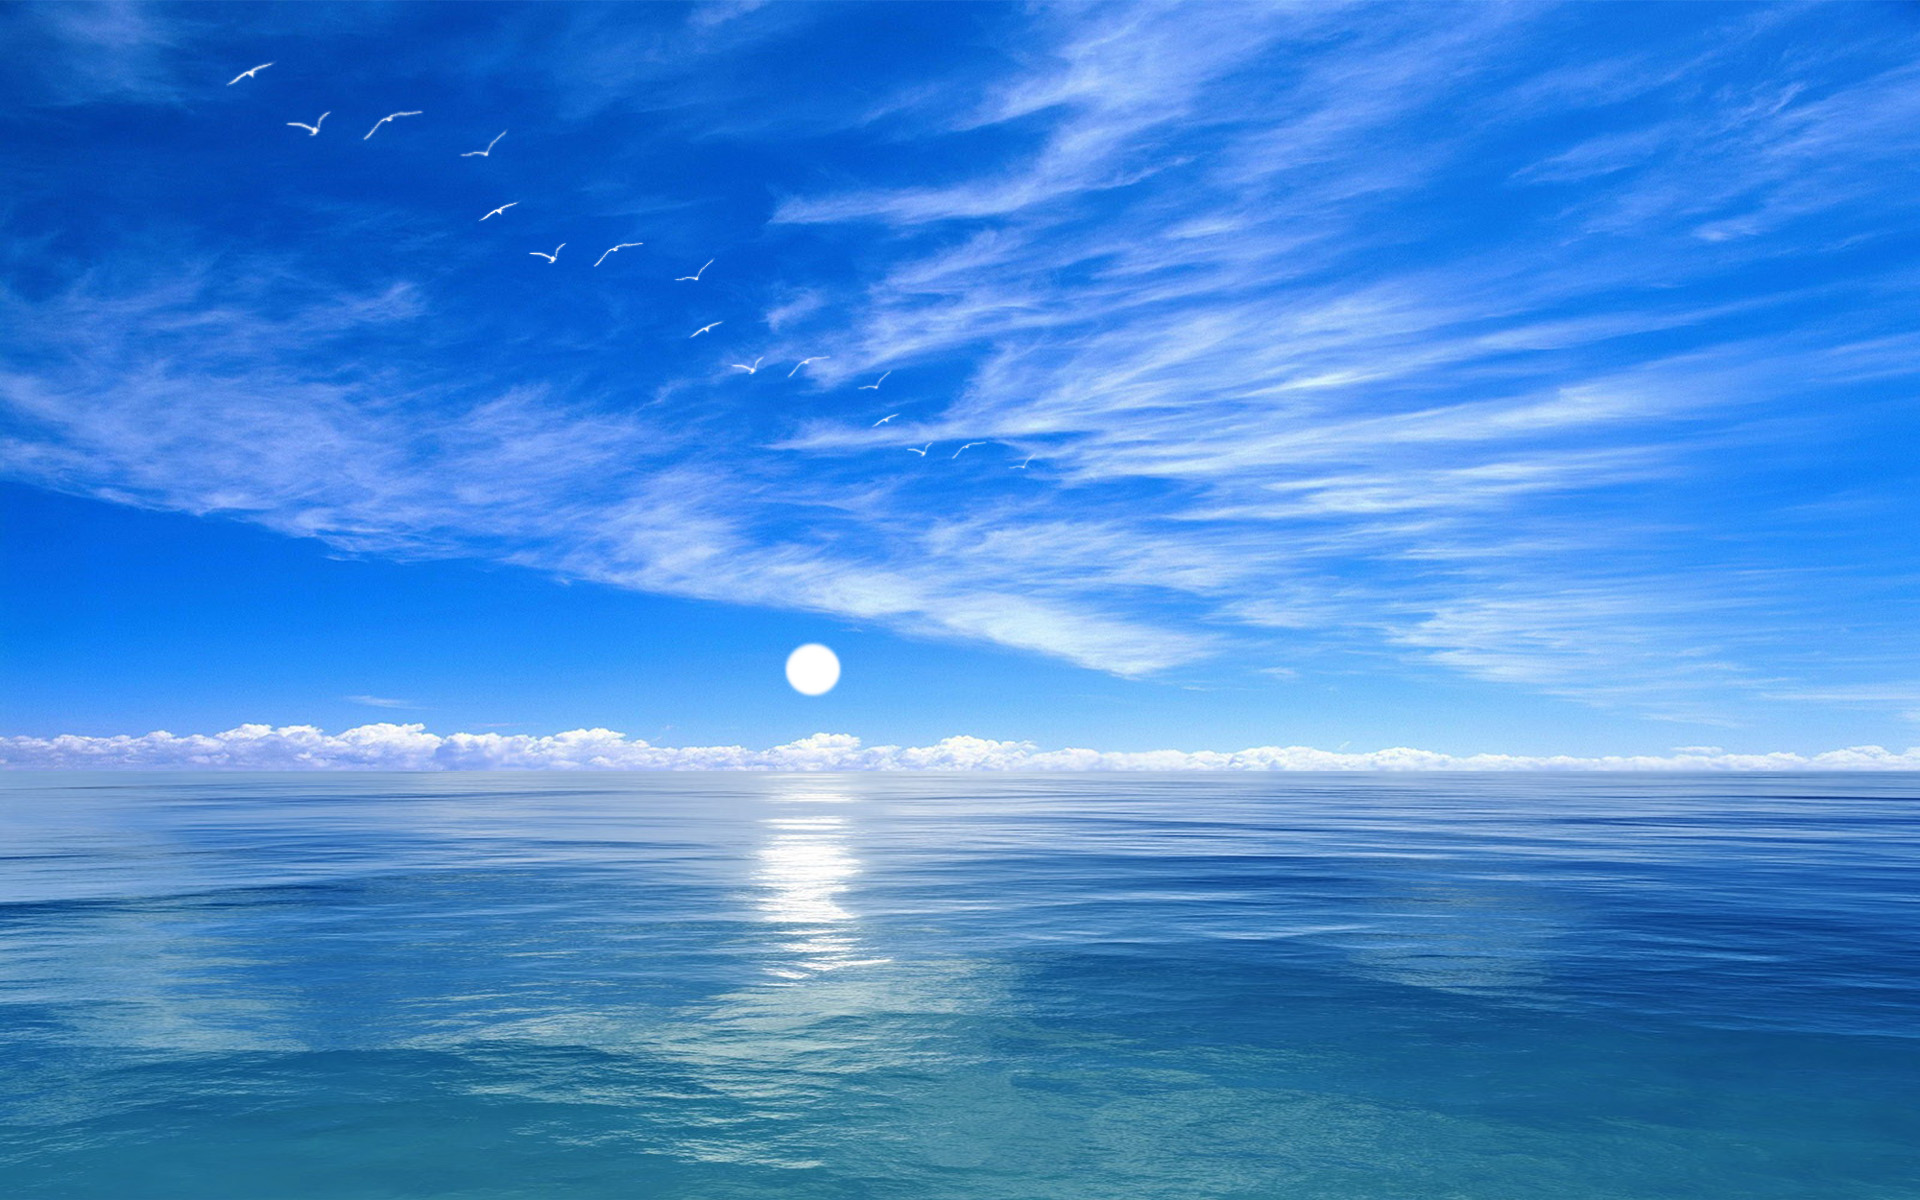 Ocean Blue Wallpapers